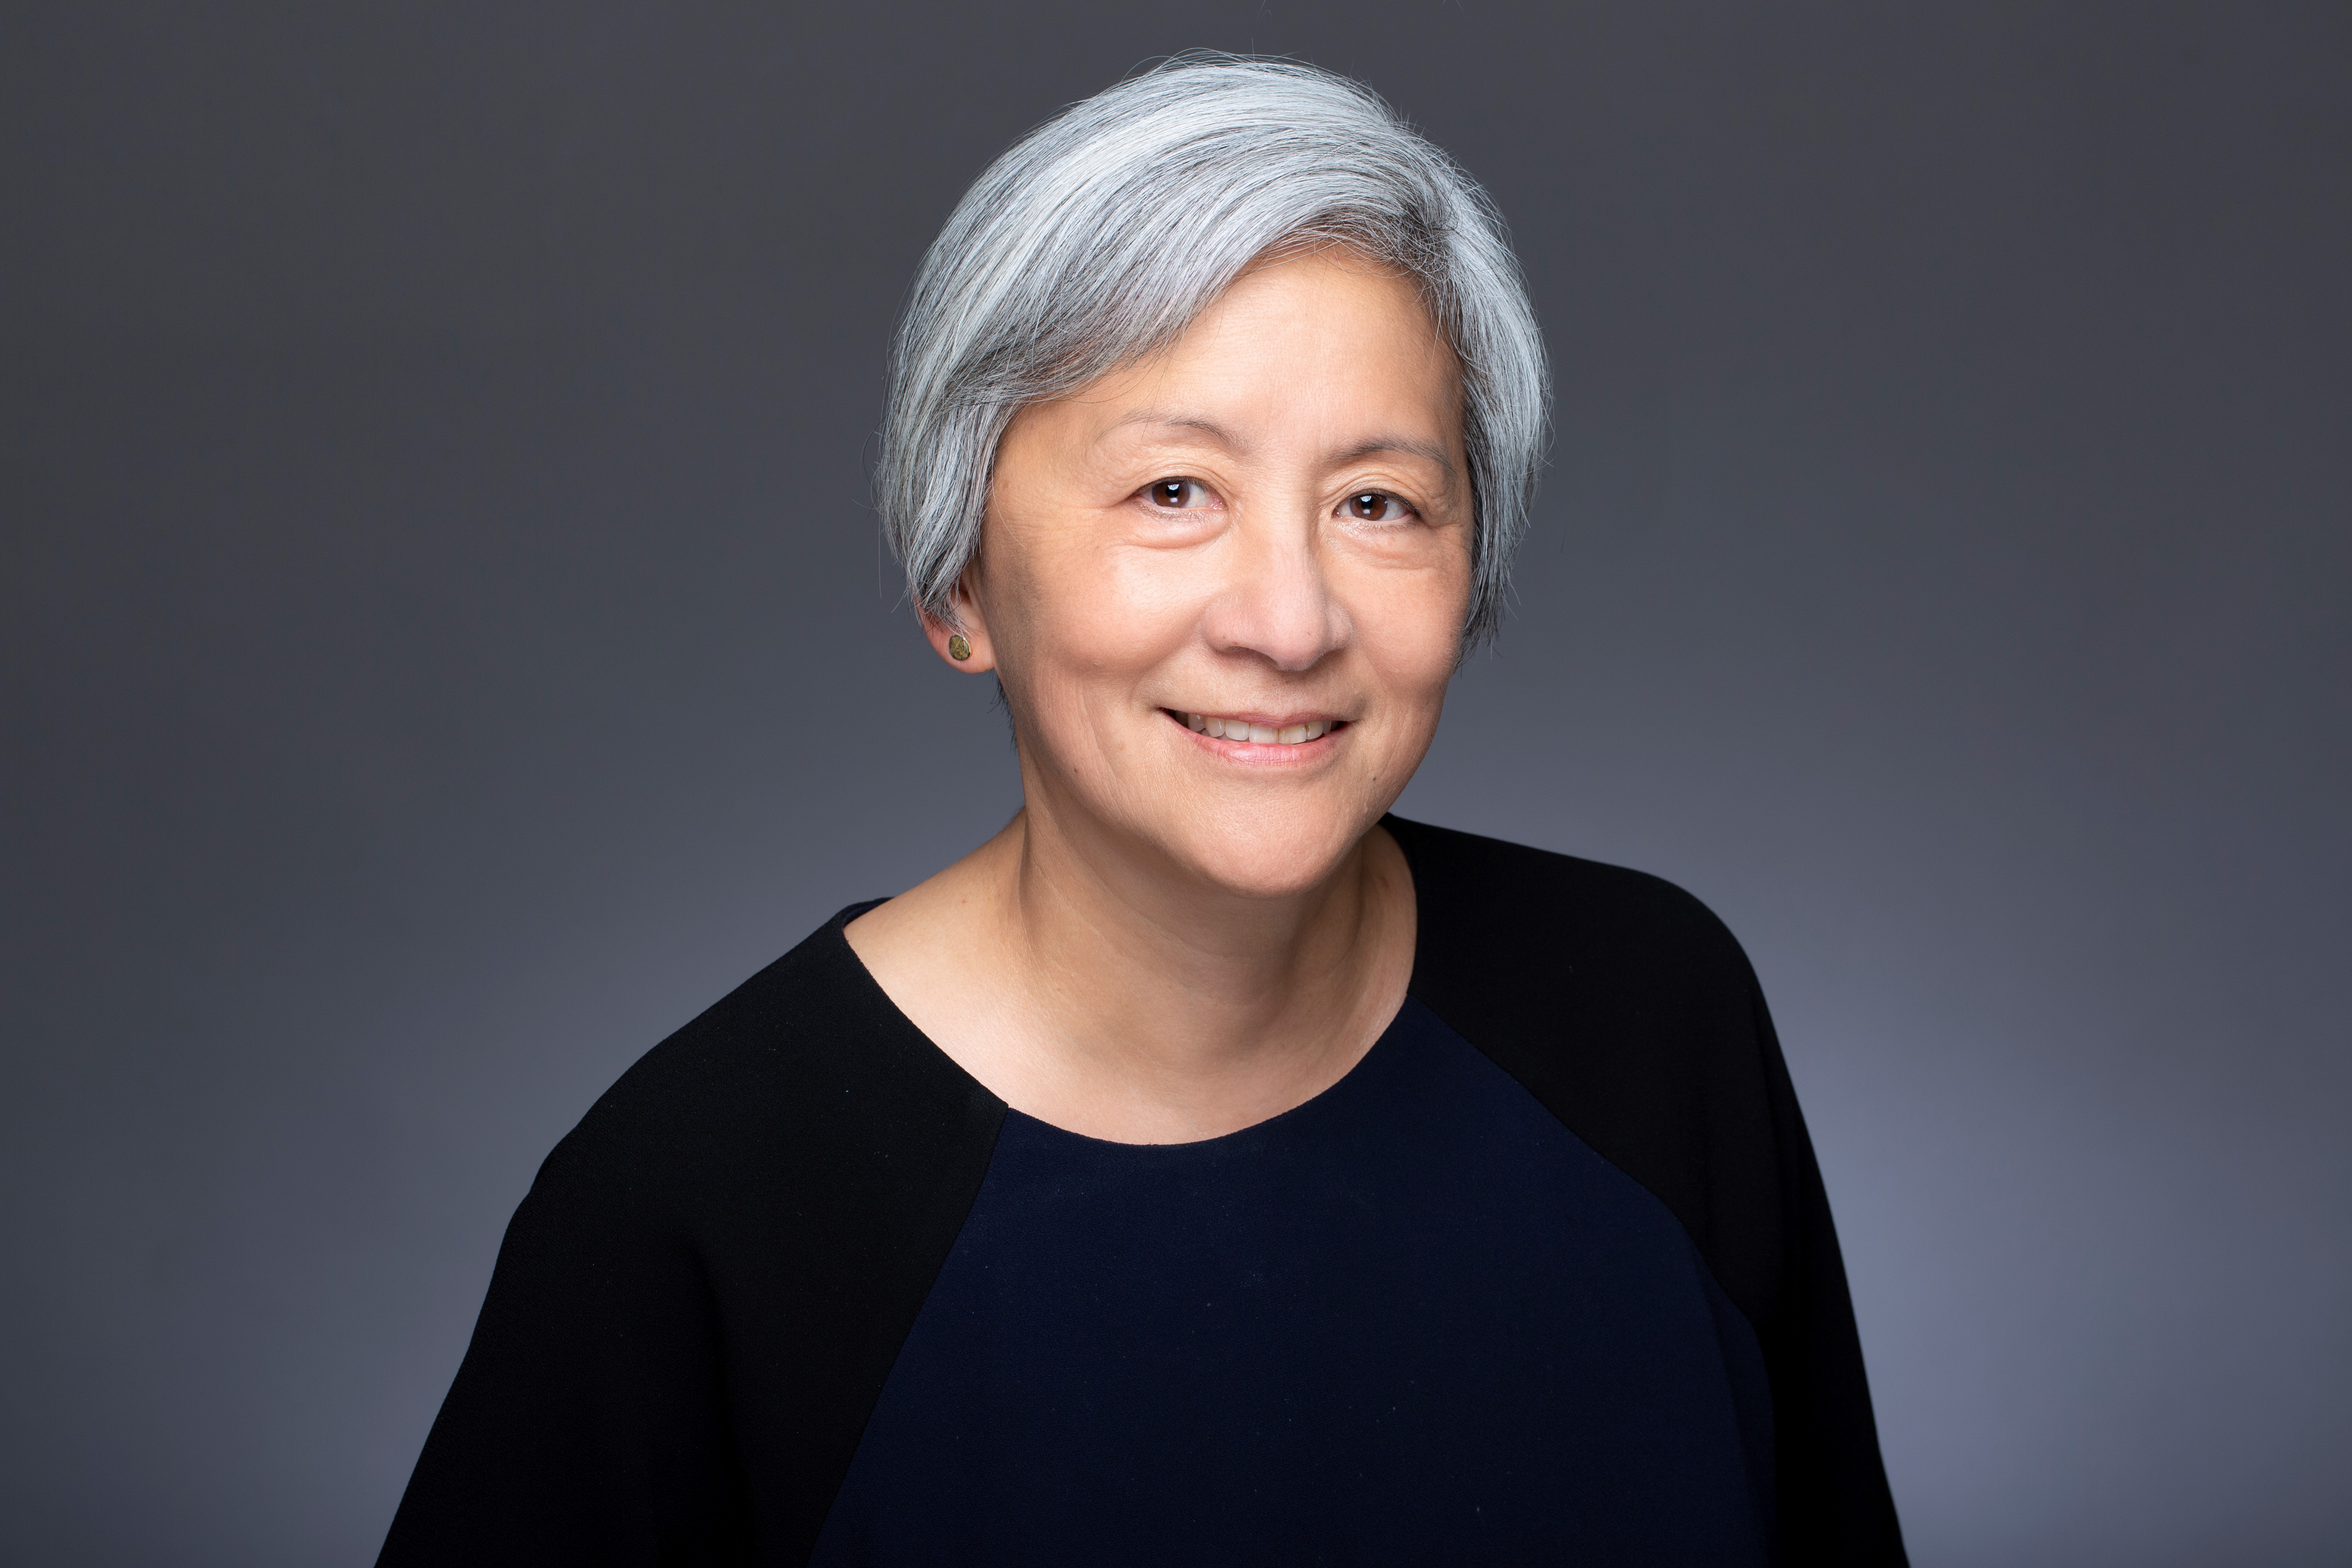 2019 Civic Design Awards Juror: Renee Y. Chow, AIA